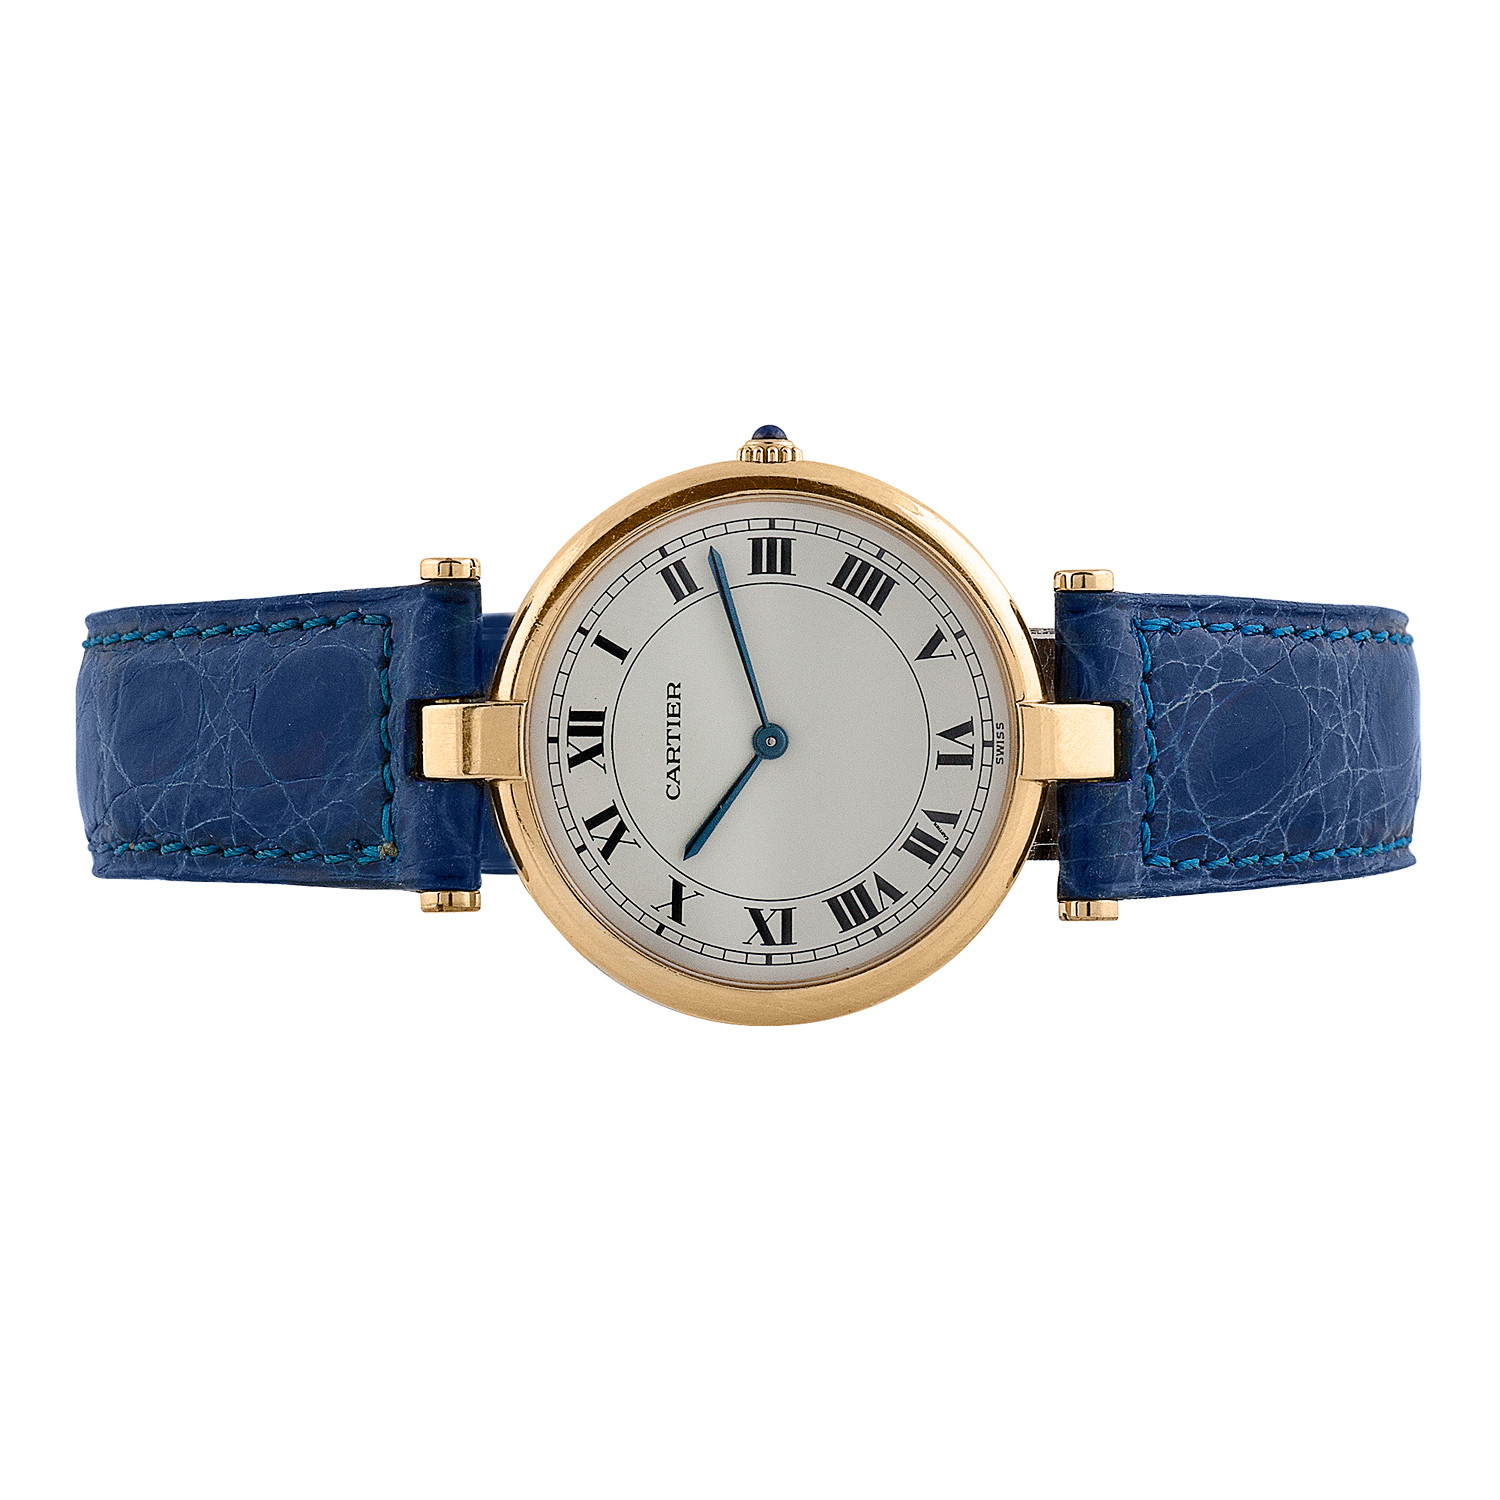 2e4b50e3fdf8 Ladies  Cartier 18K Vendome    c.1980 s - Vintage Cartier Watches ...